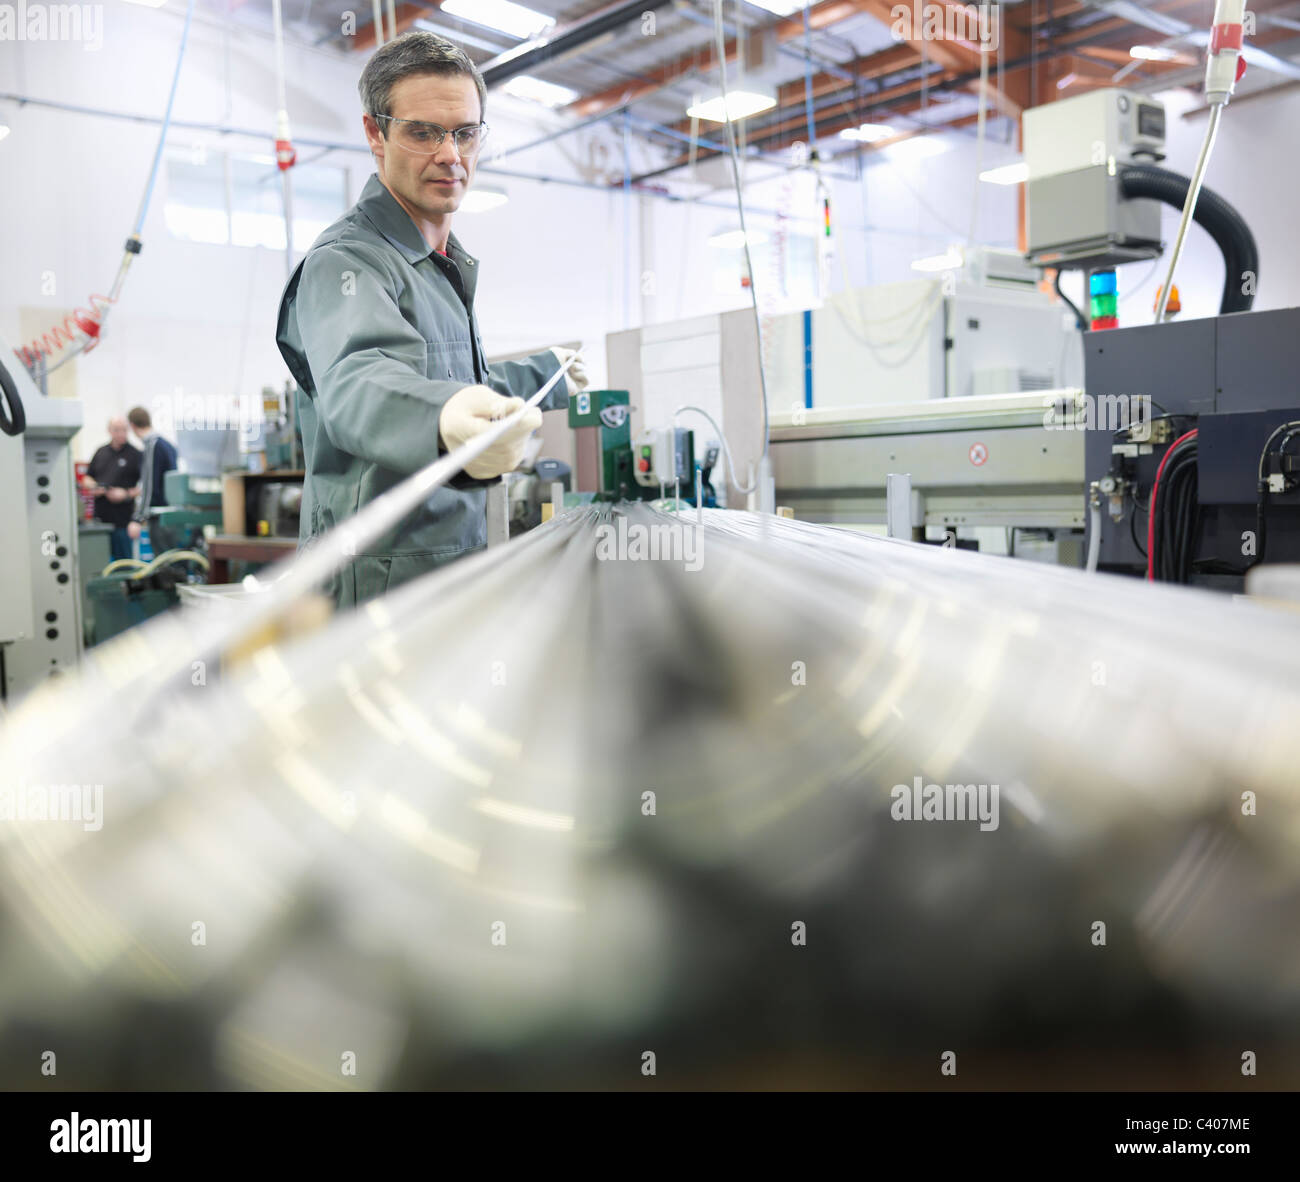 Engineer working with metal rods Stock Photo